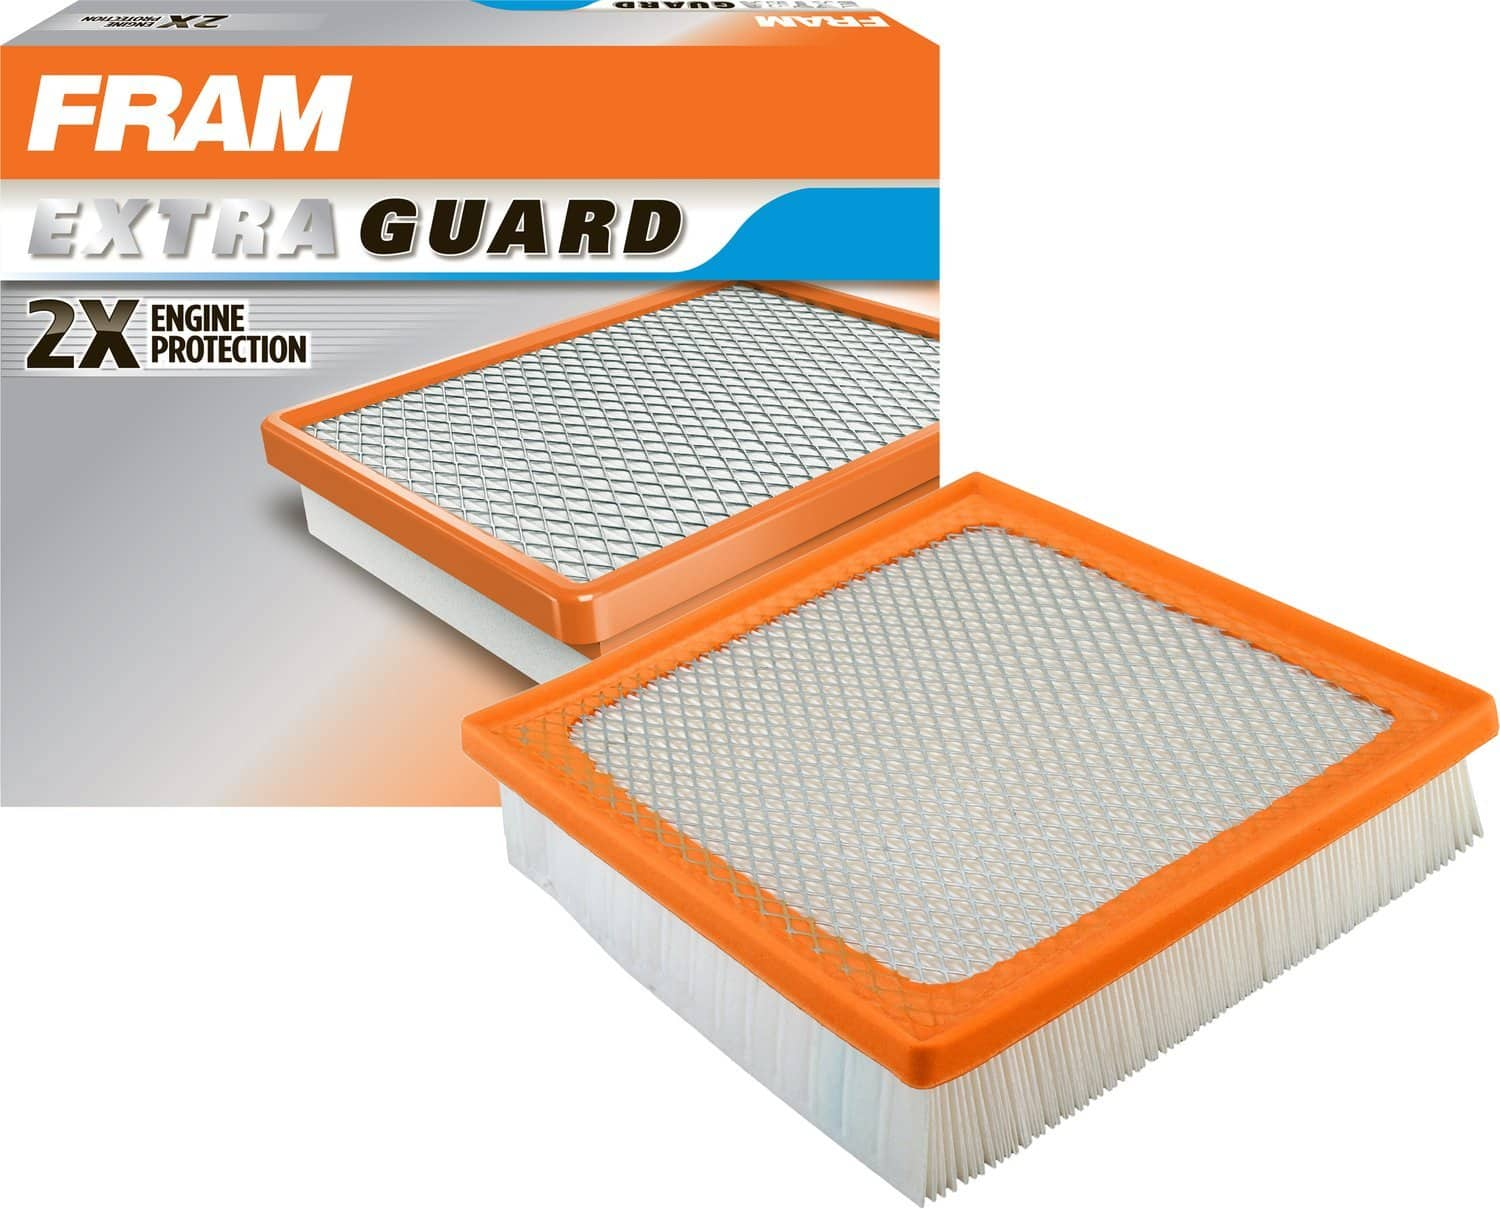 FRAM Air AND Oil Filters - $4.00 mail-in Rebate with qualifying purchases  one each